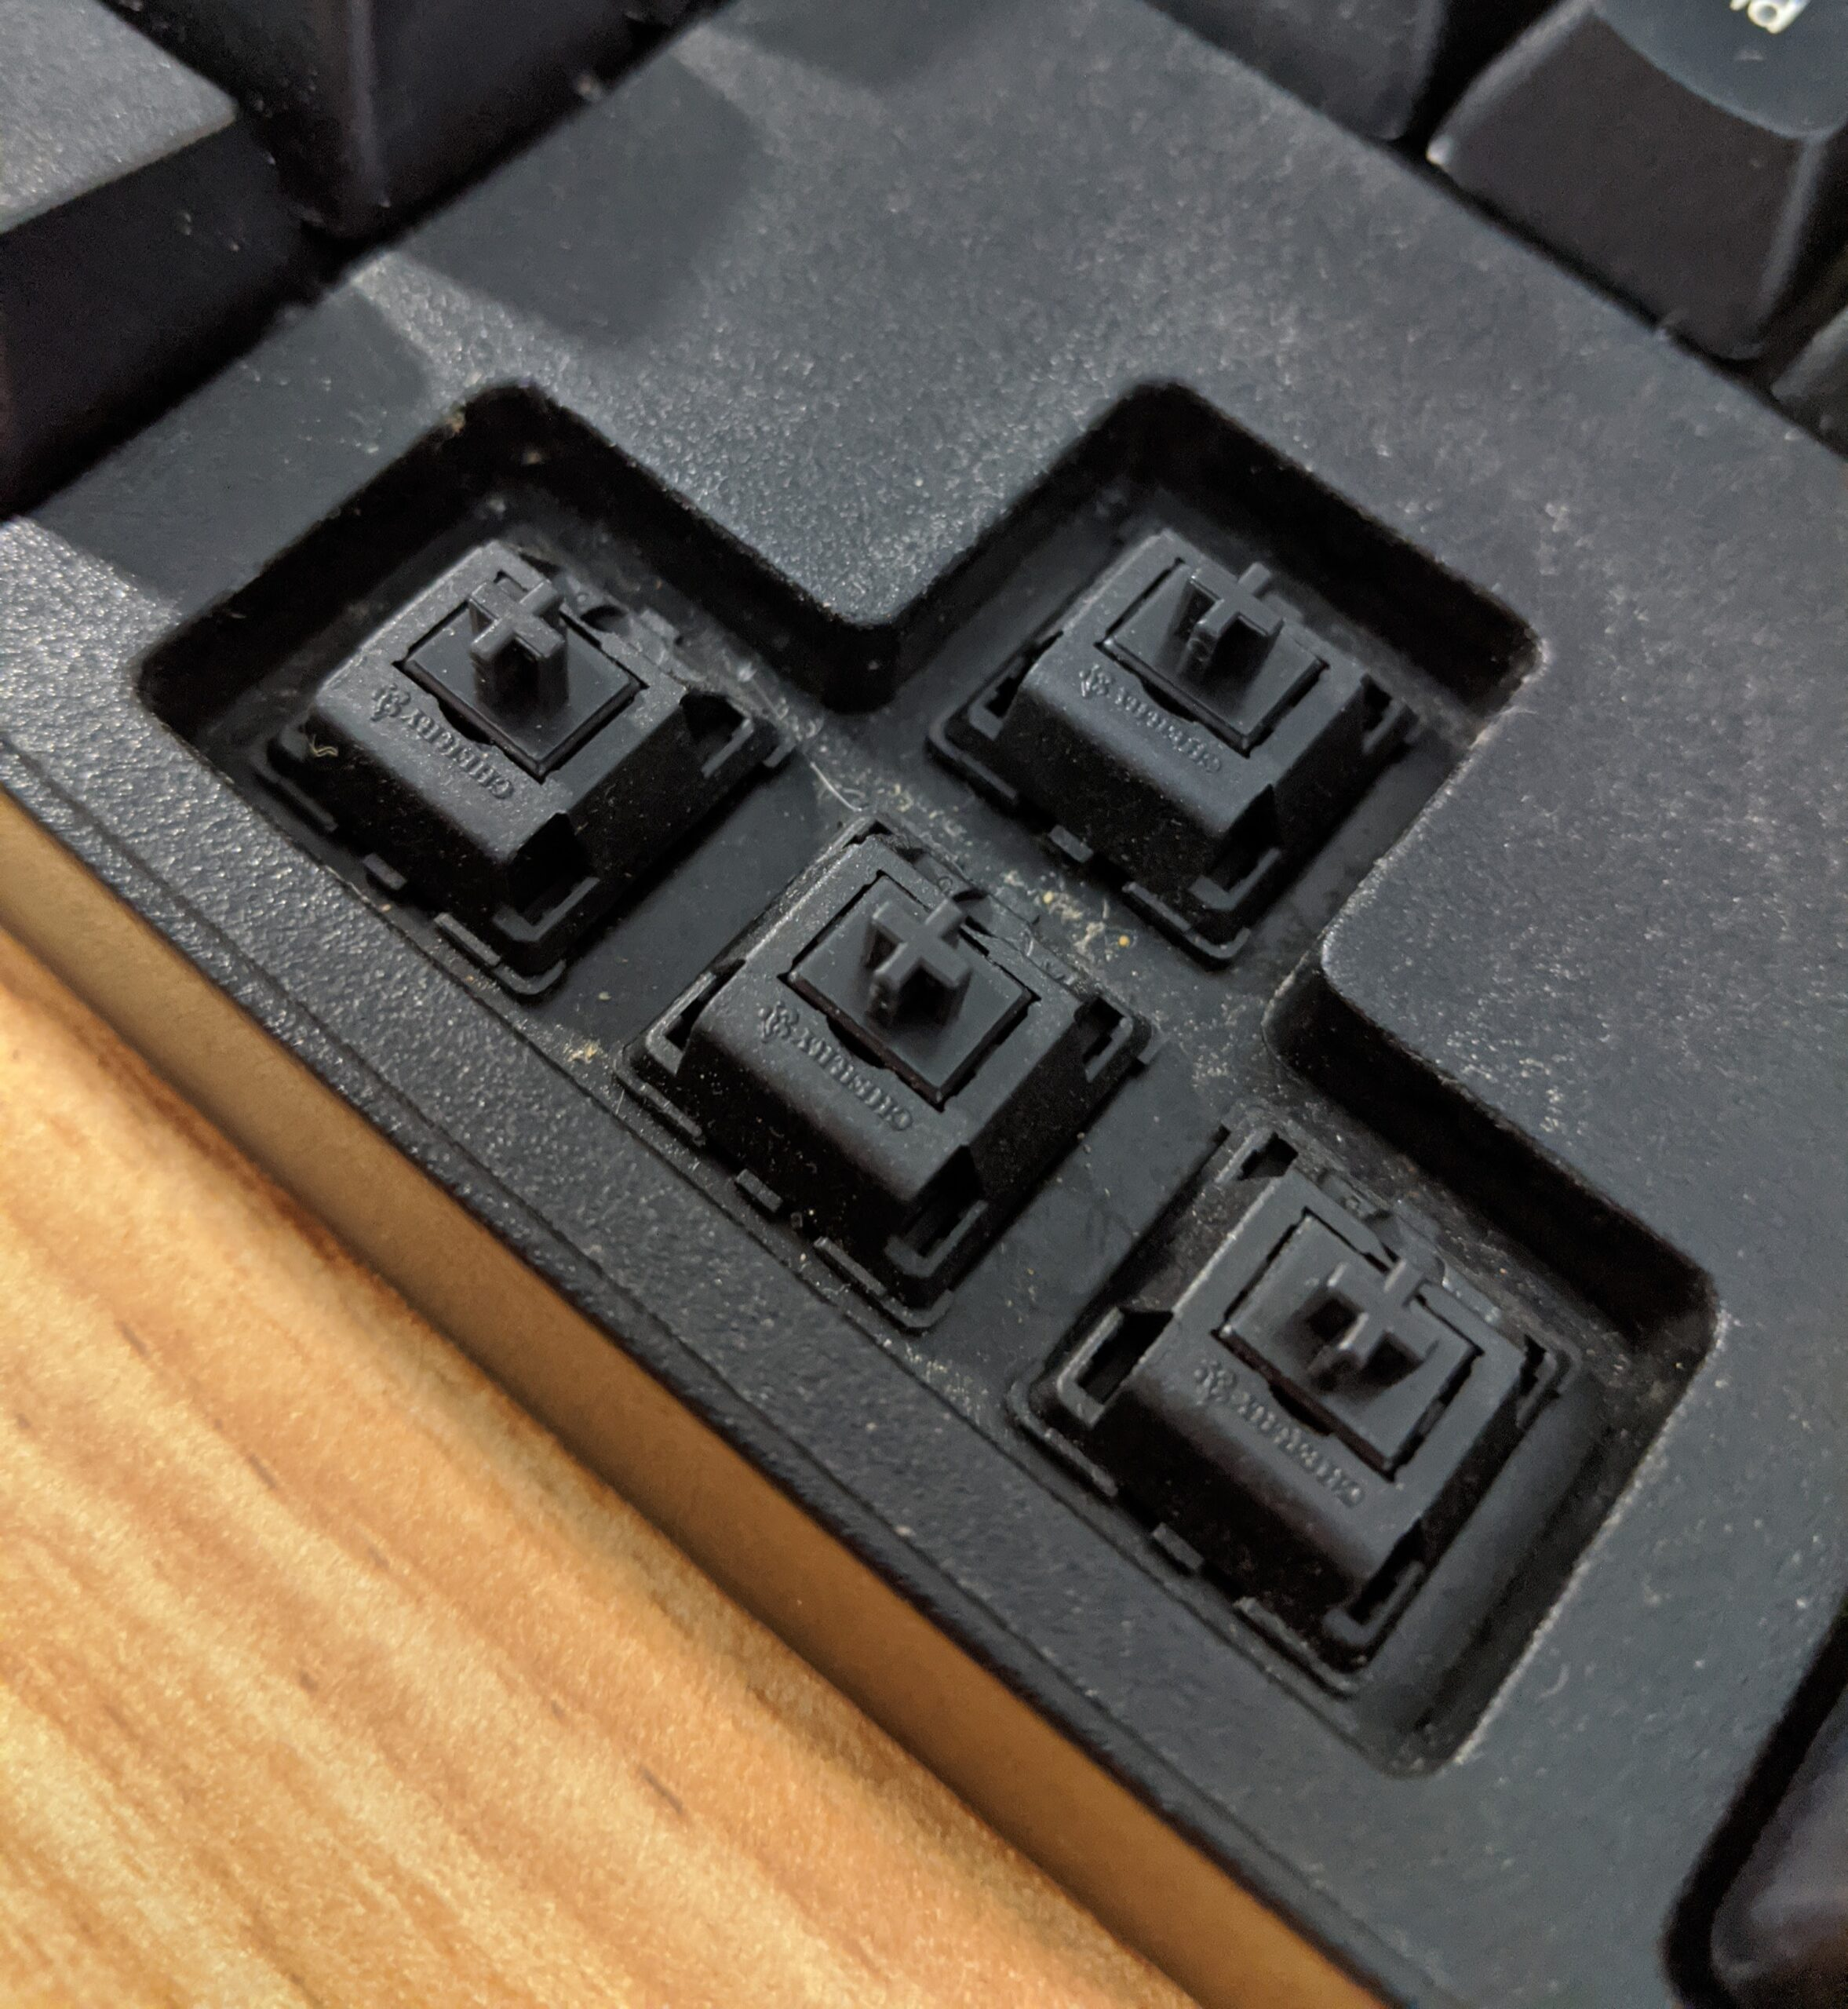 Cherry MX Black switches on arrow keys.